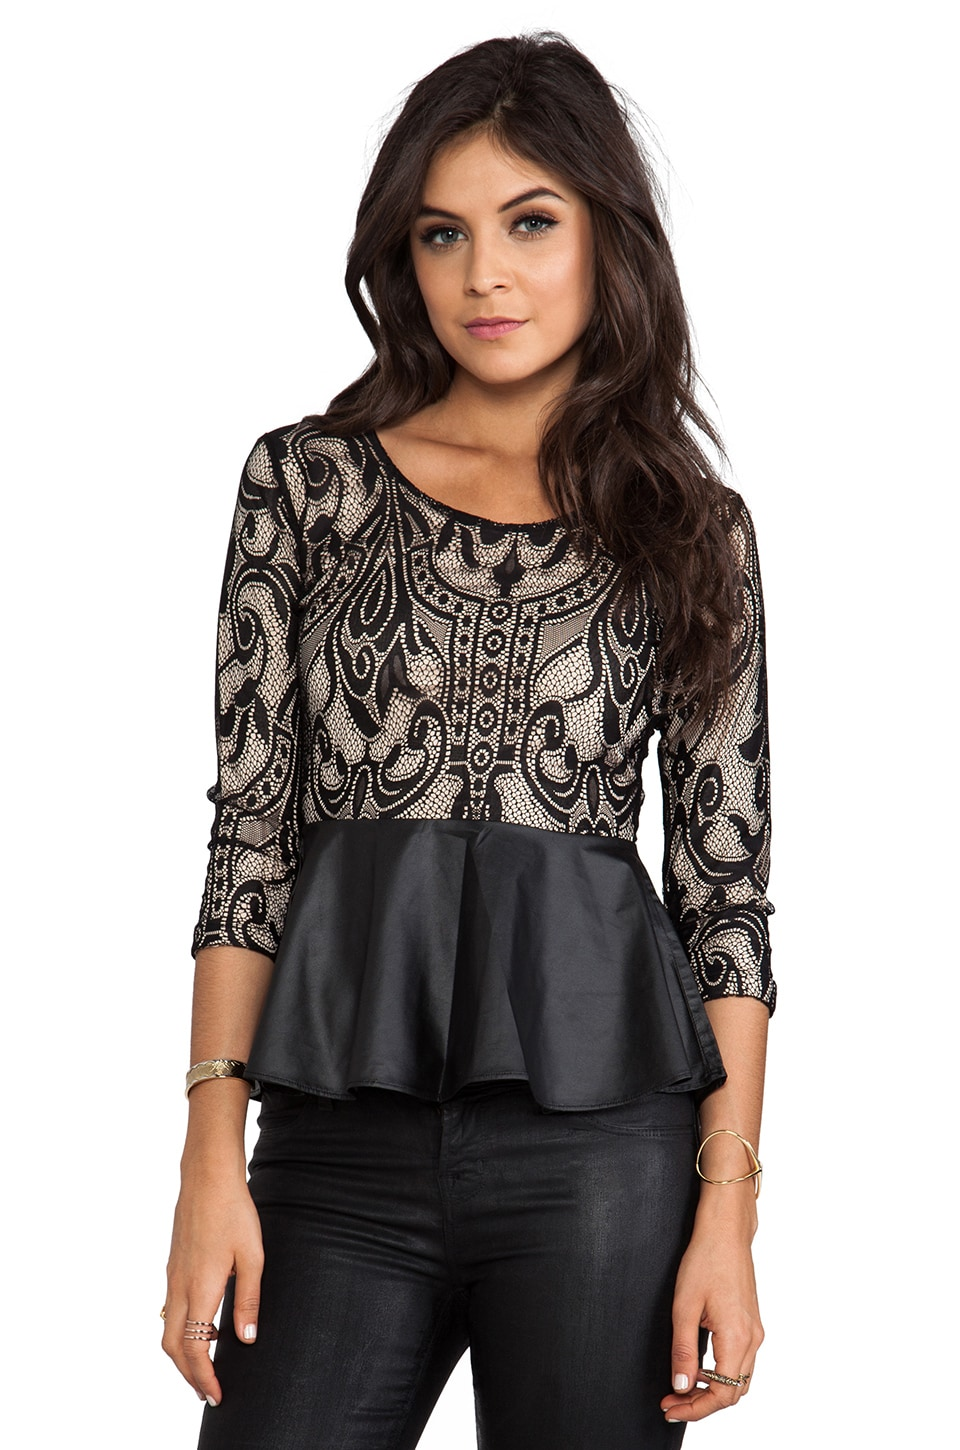 Lovers + Friends Soiree Peplum Top in Black Lace